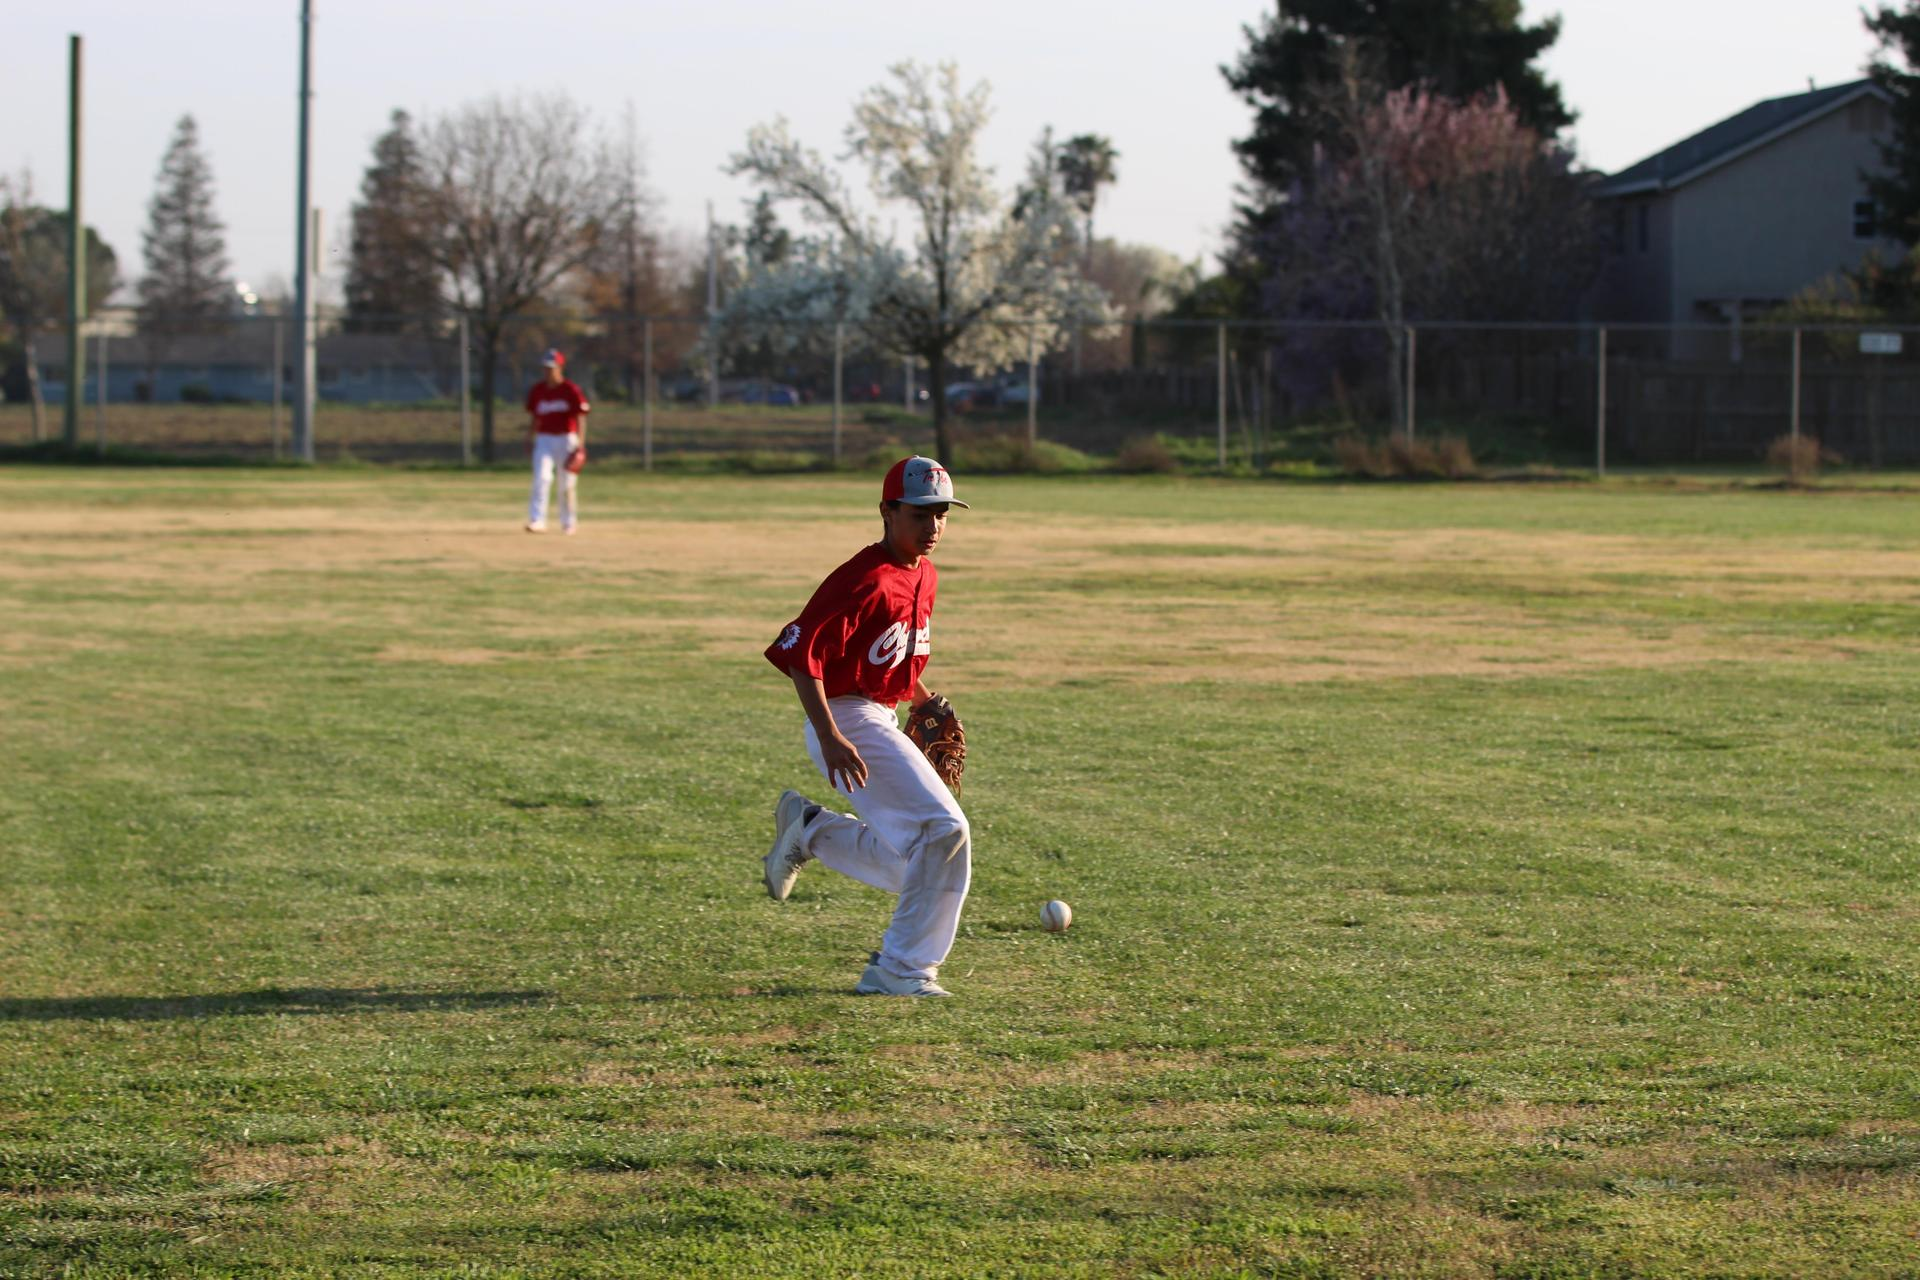 boys playing baseball against Sierra Pacific